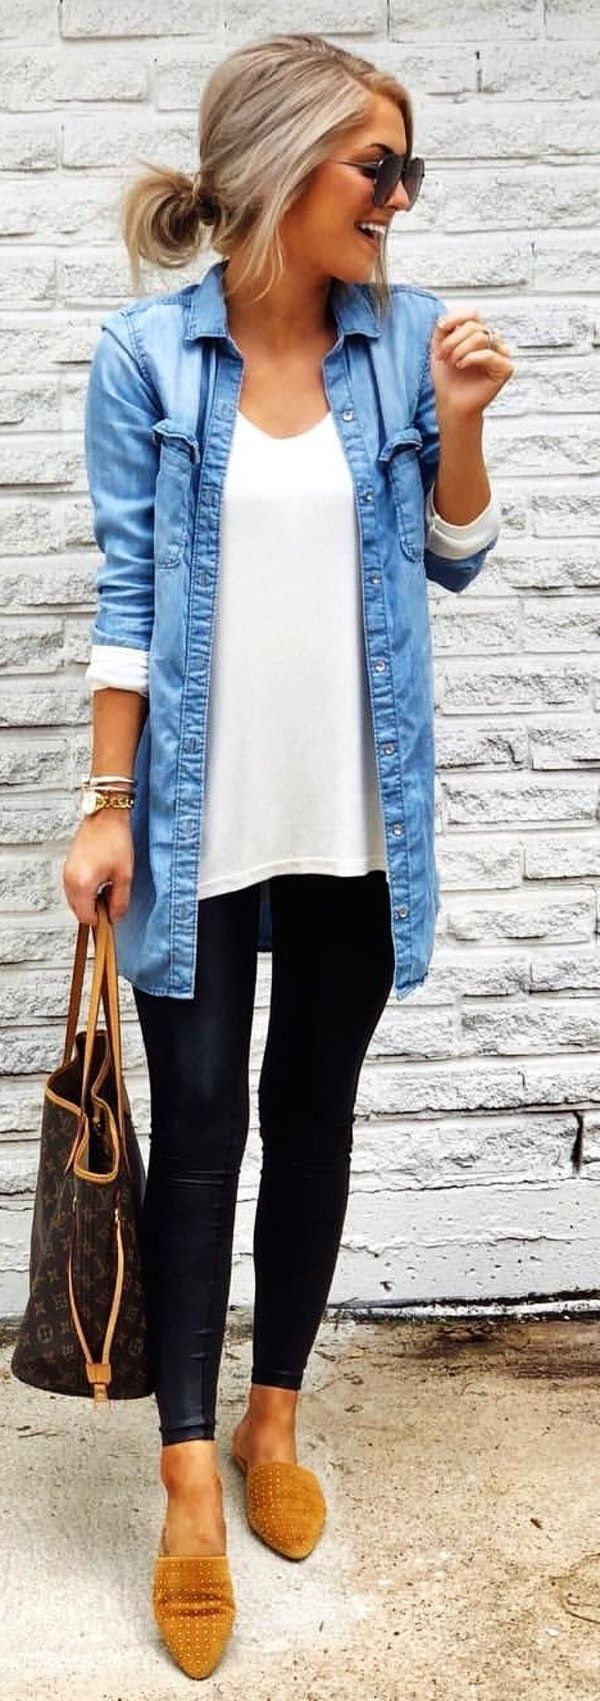 10+ Pretty Fall Outfits To Copy Now